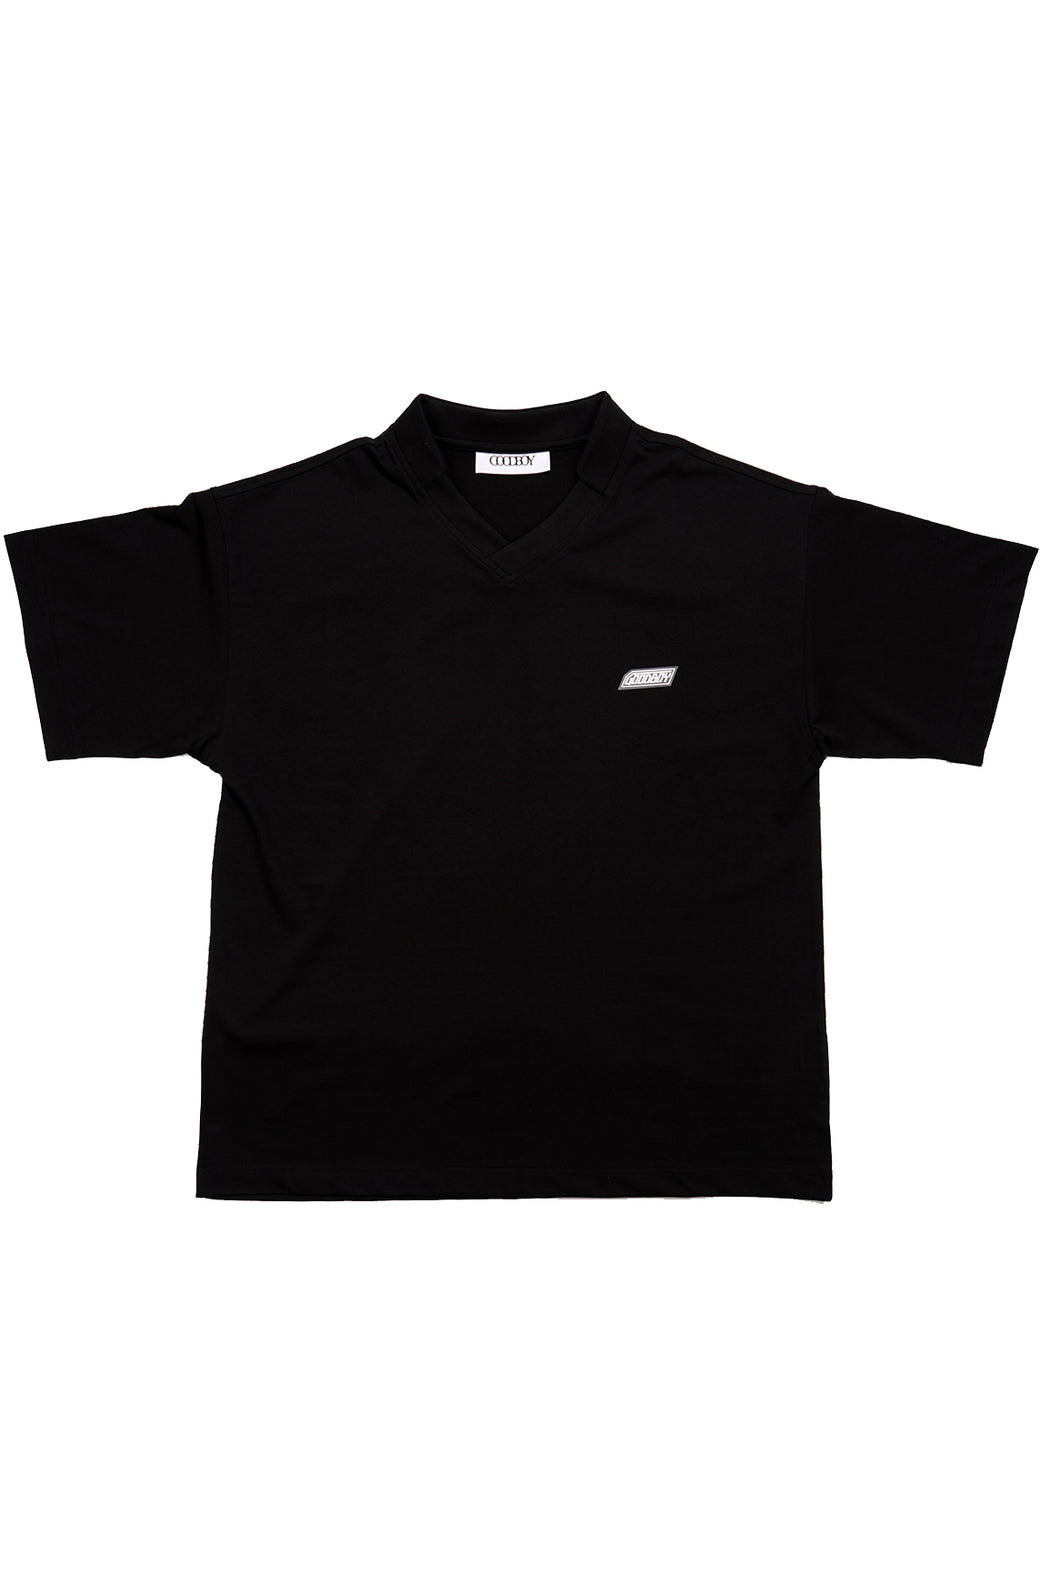 Oversized BB Tee - Black